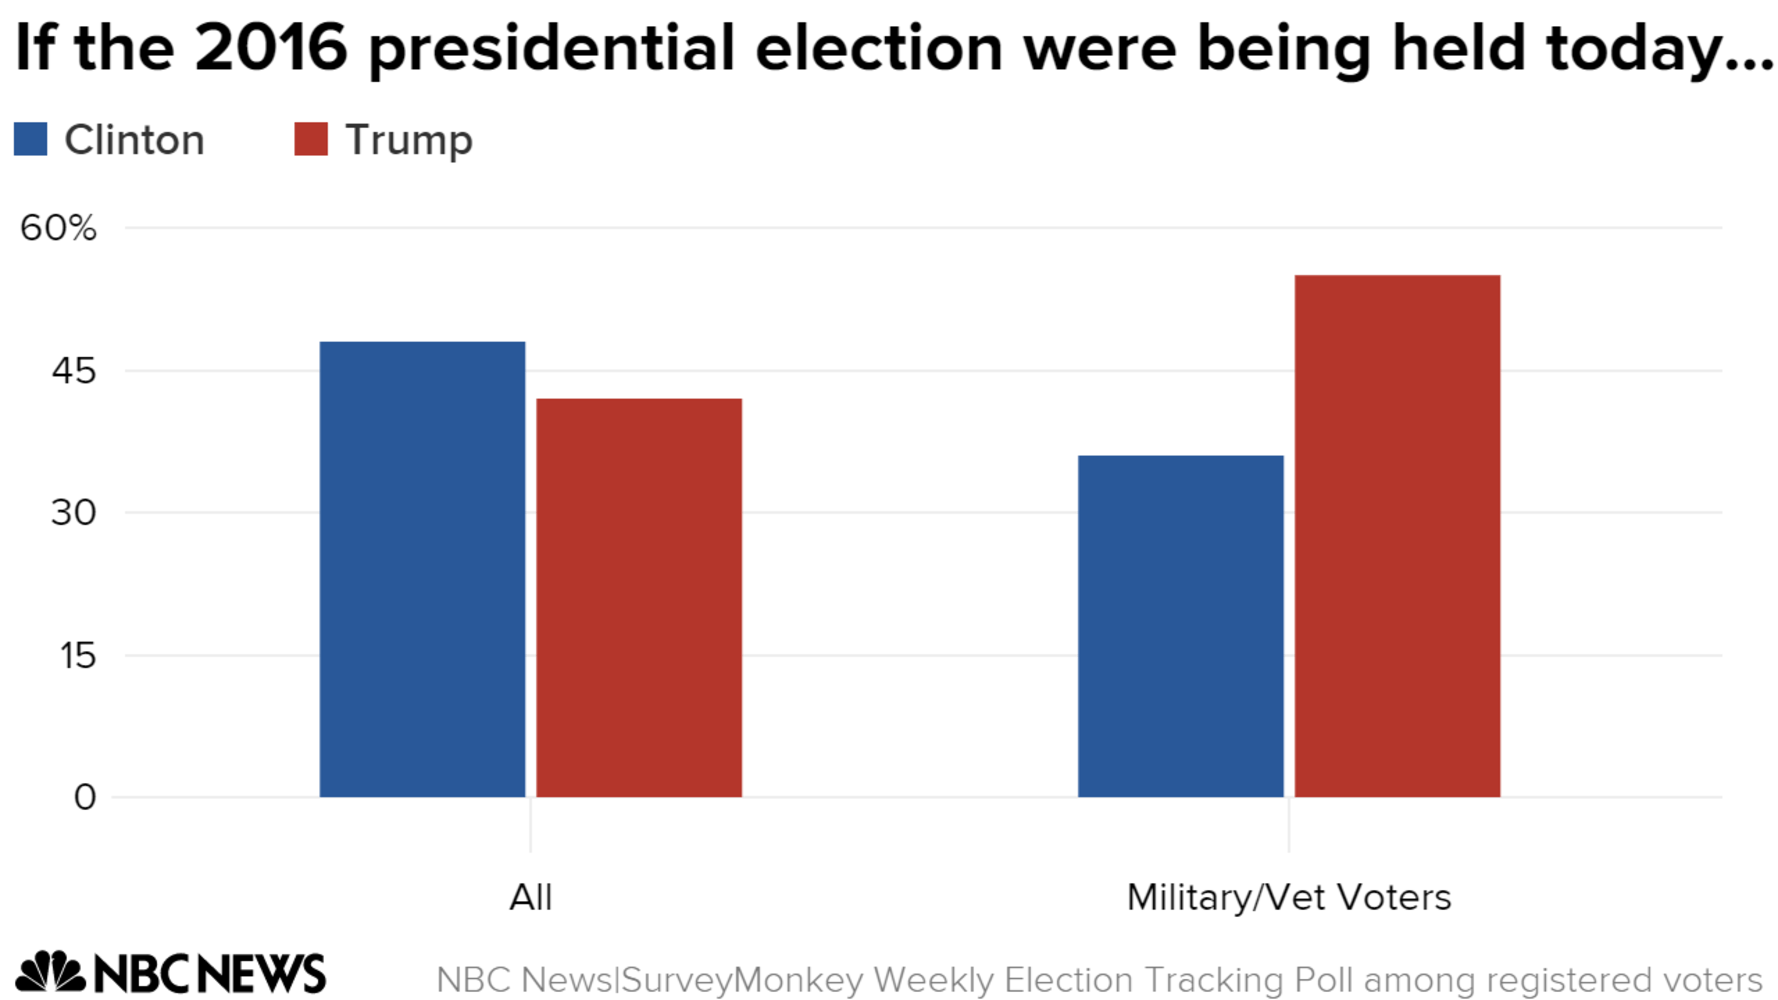 Poll: Trump Leads Clinton Among Military and Veteran Voters - NBC News.